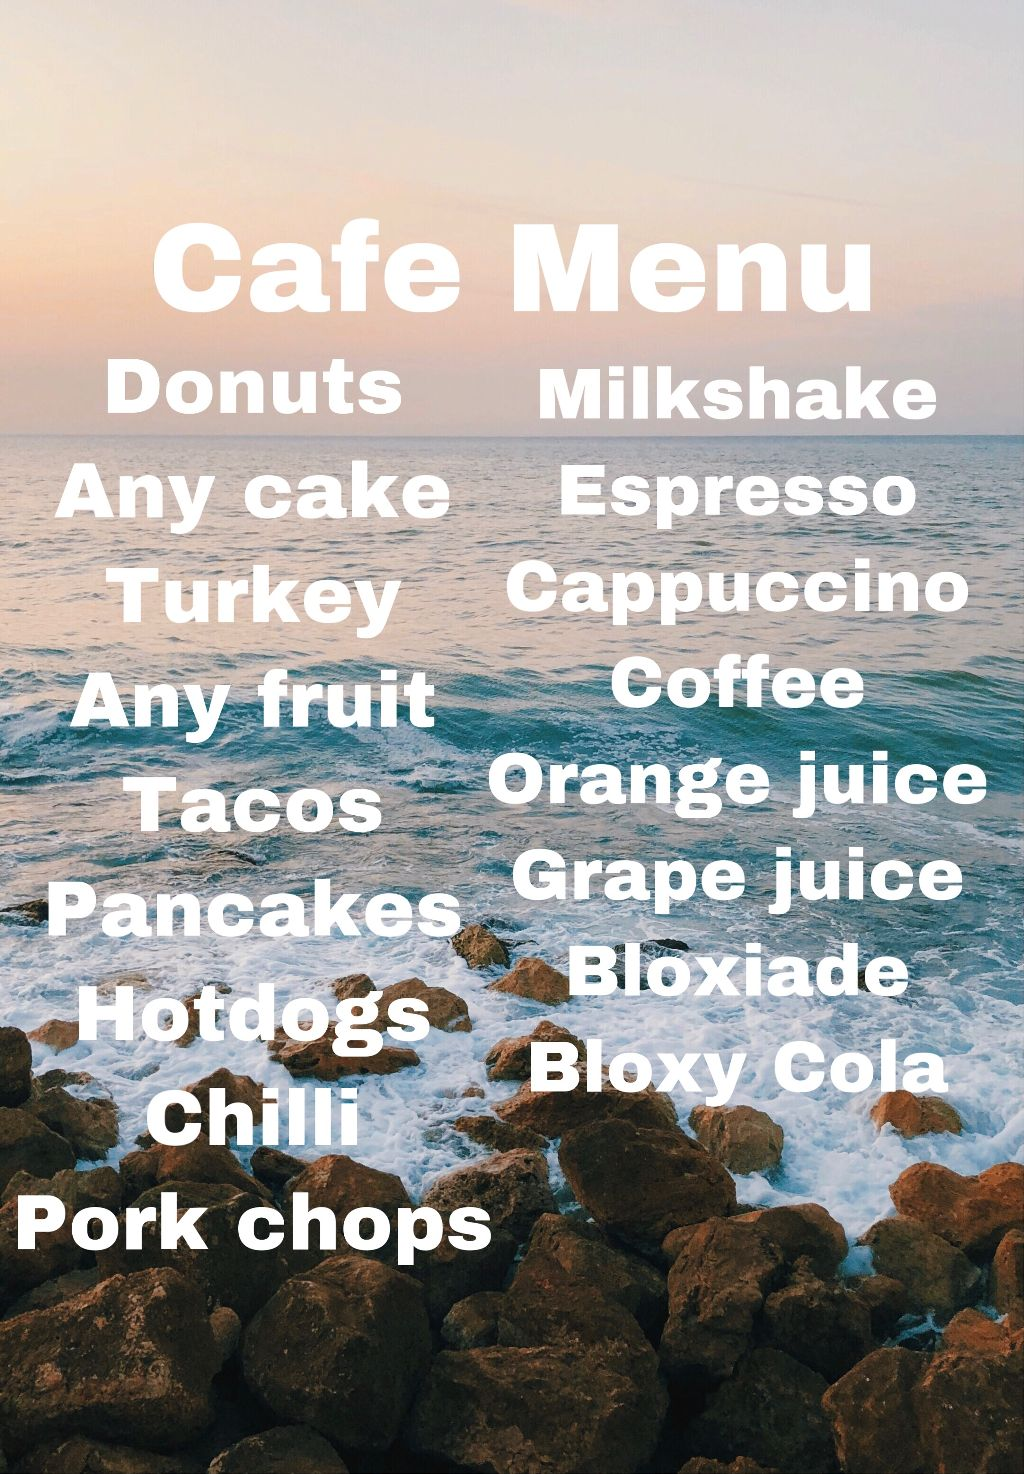 Bloxburg cafe menu - Image by Bloxburg things 💞